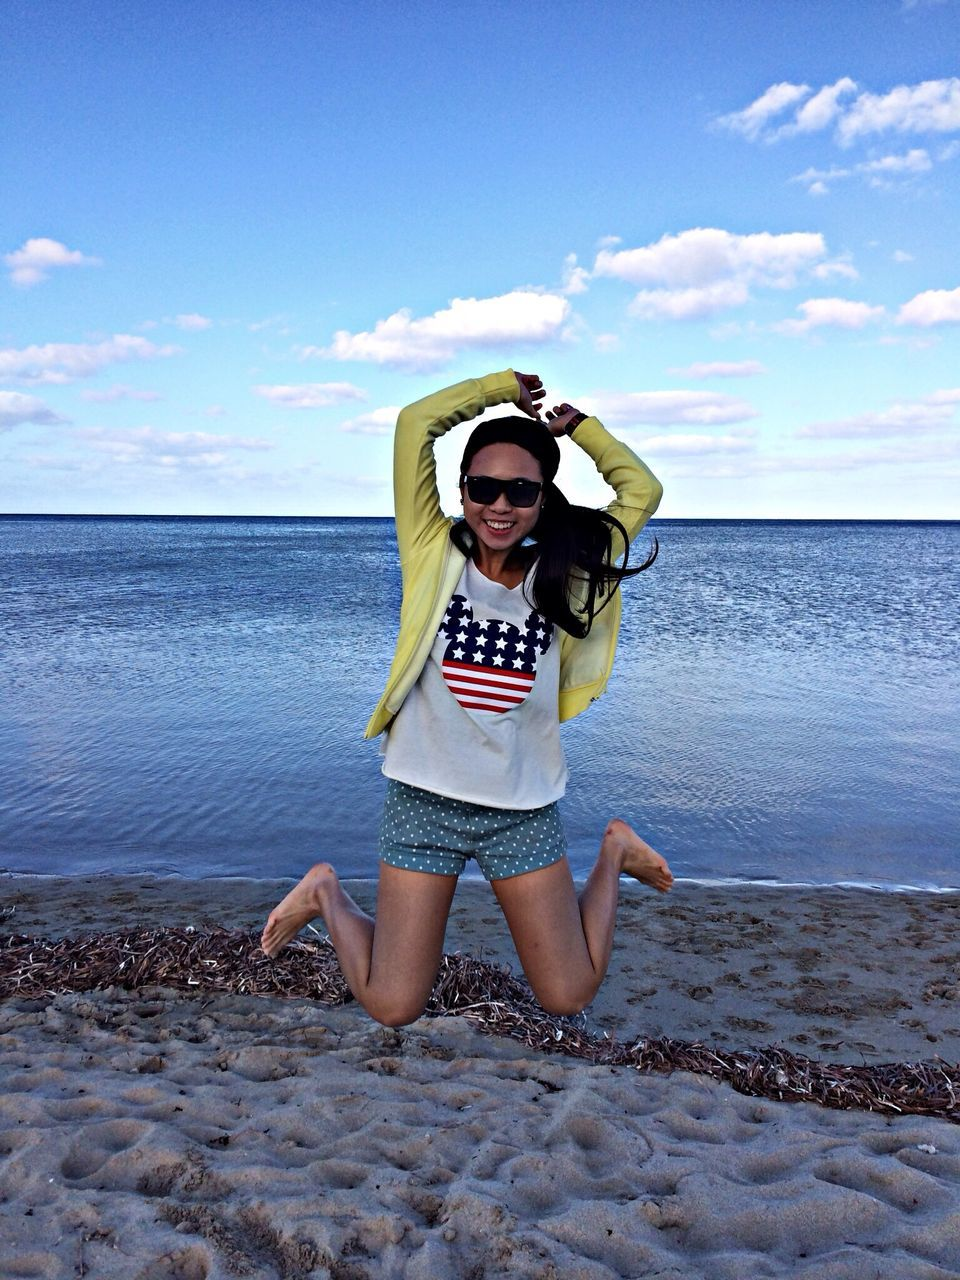 sea, one person, real people, sky, sunglasses, young adult, water, front view, beach, horizon over water, young women, cloud - sky, day, leisure activity, beauty in nature, nature, scenics, full length, standing, outdoors, happiness, lifestyles, vacations, smiling, beautiful woman, people